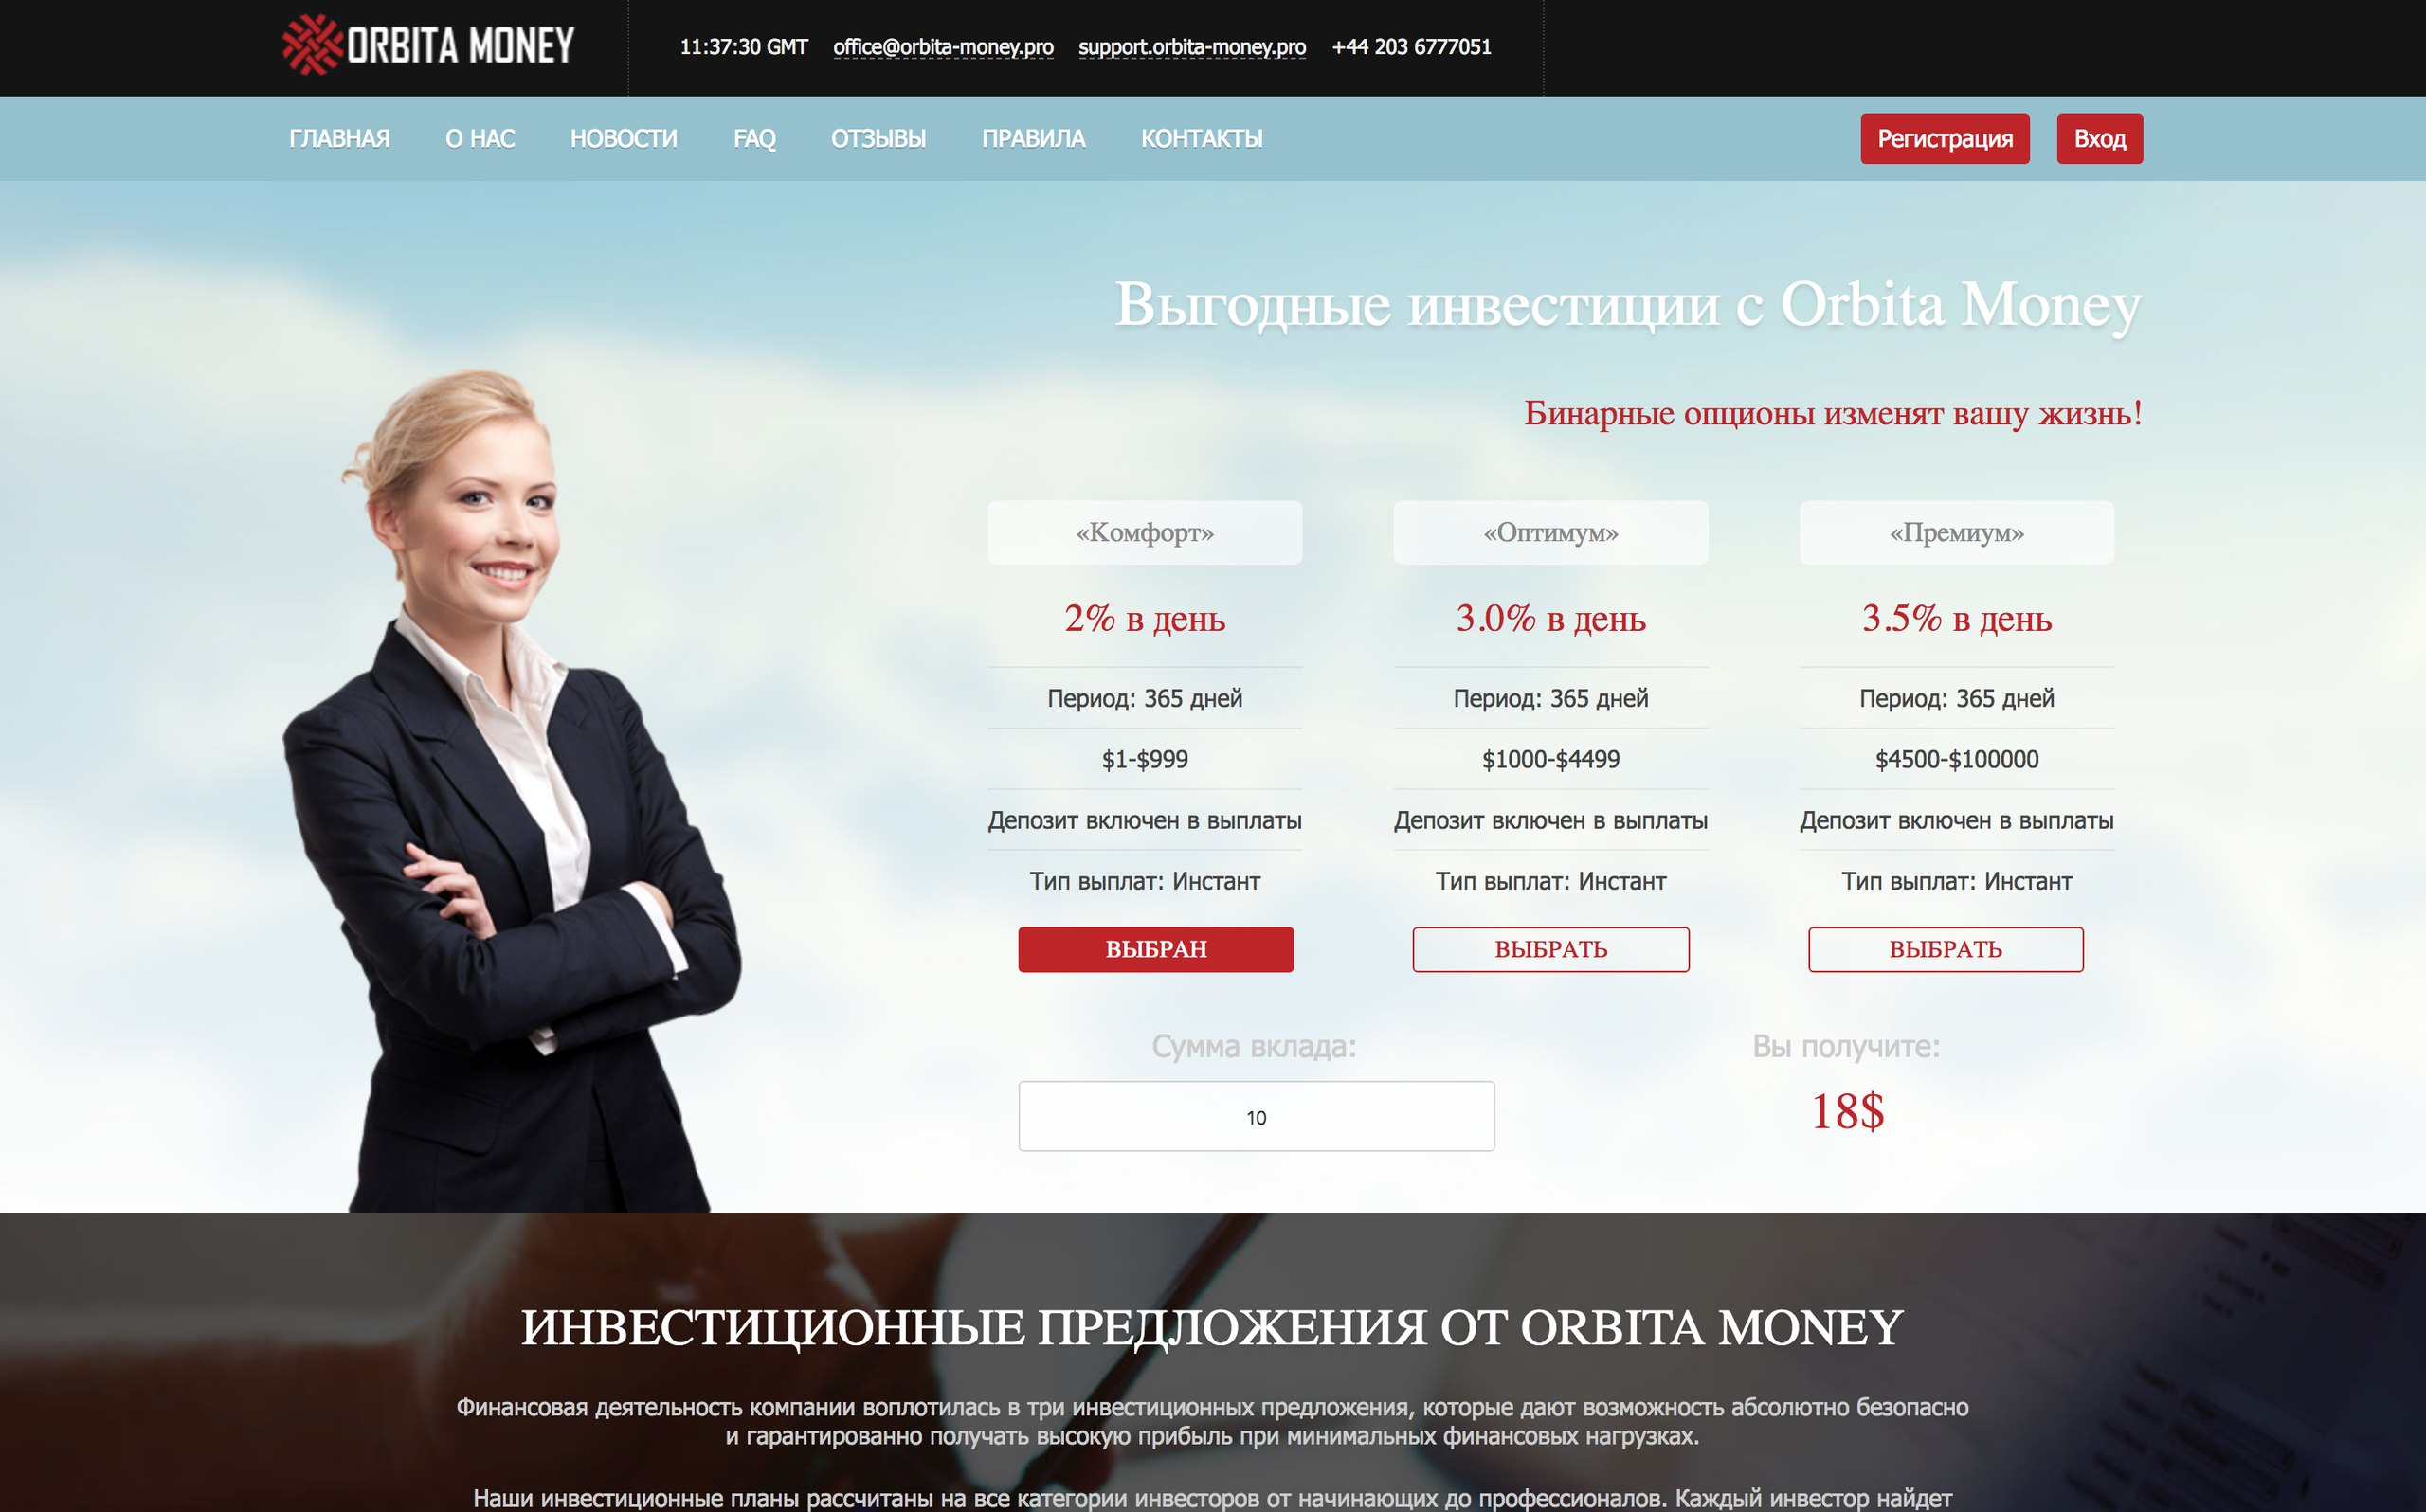 ORBITA-MONEY IMazssb-vFc832f4